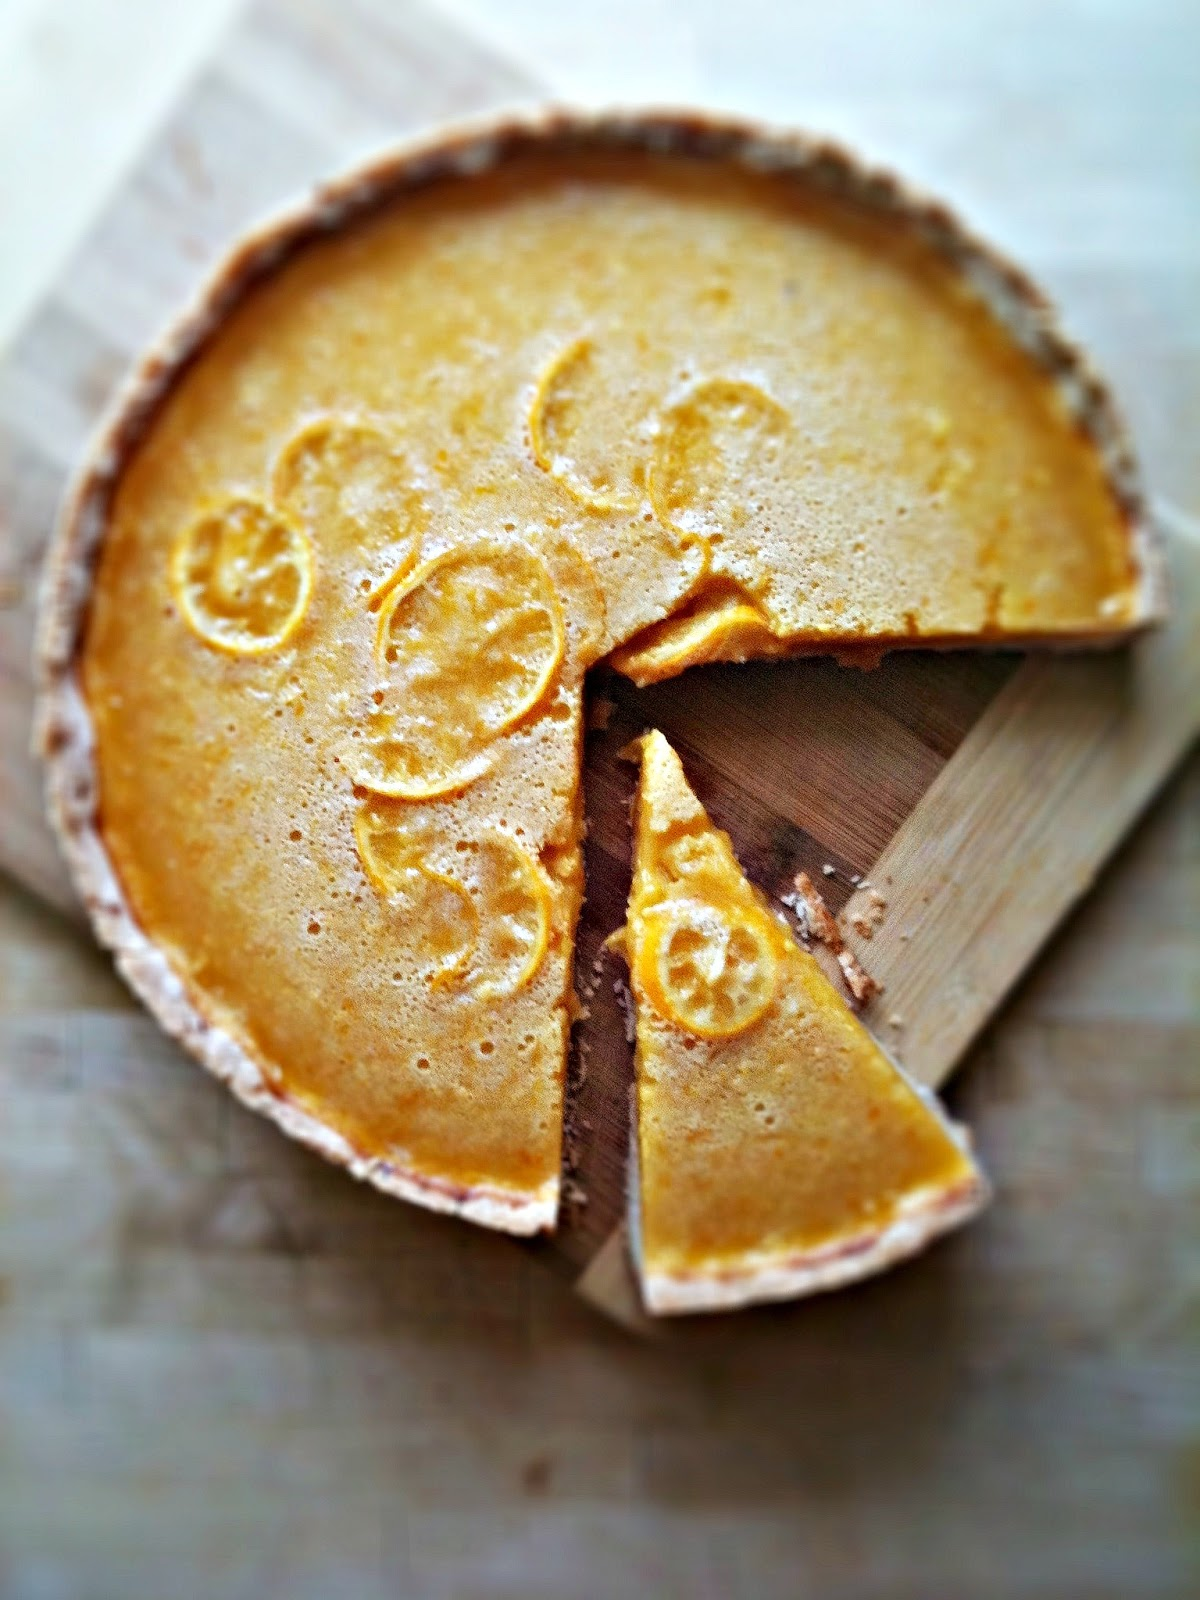 sweetsugarbean: Meyer Lemon Honey Tart with Salted Shortbread Crust